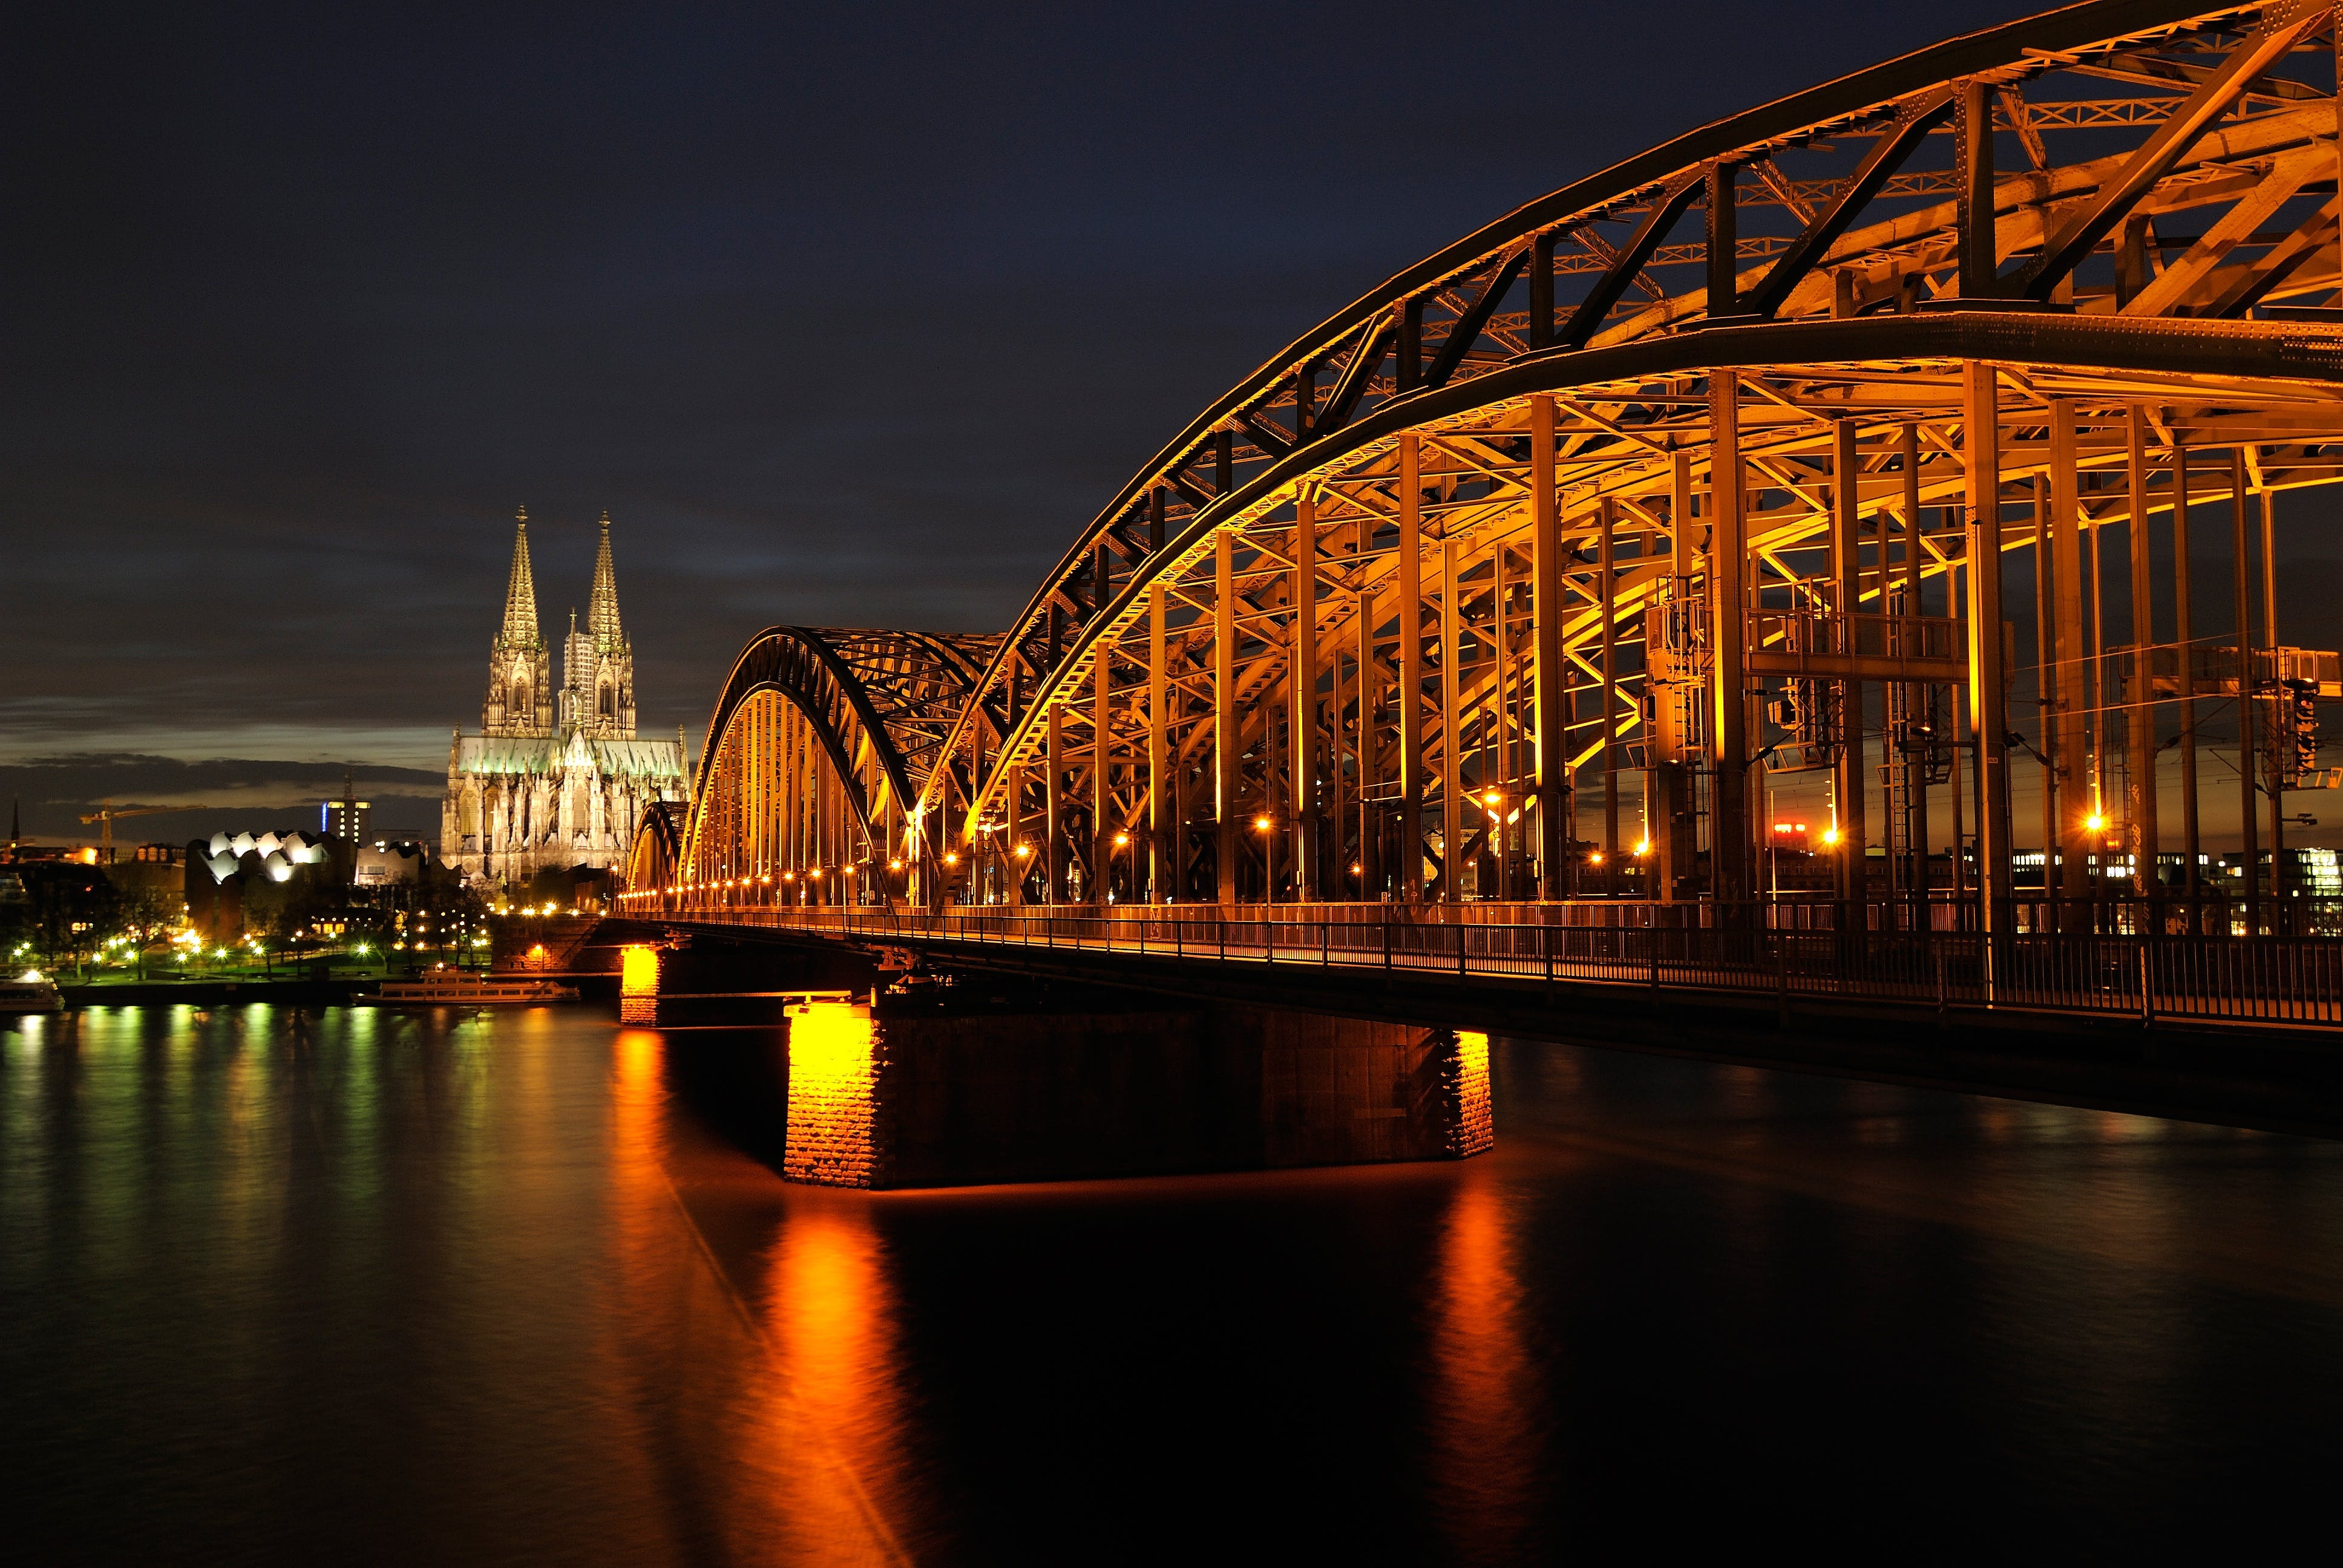 Architectural Photo of Bridge during Nighttime